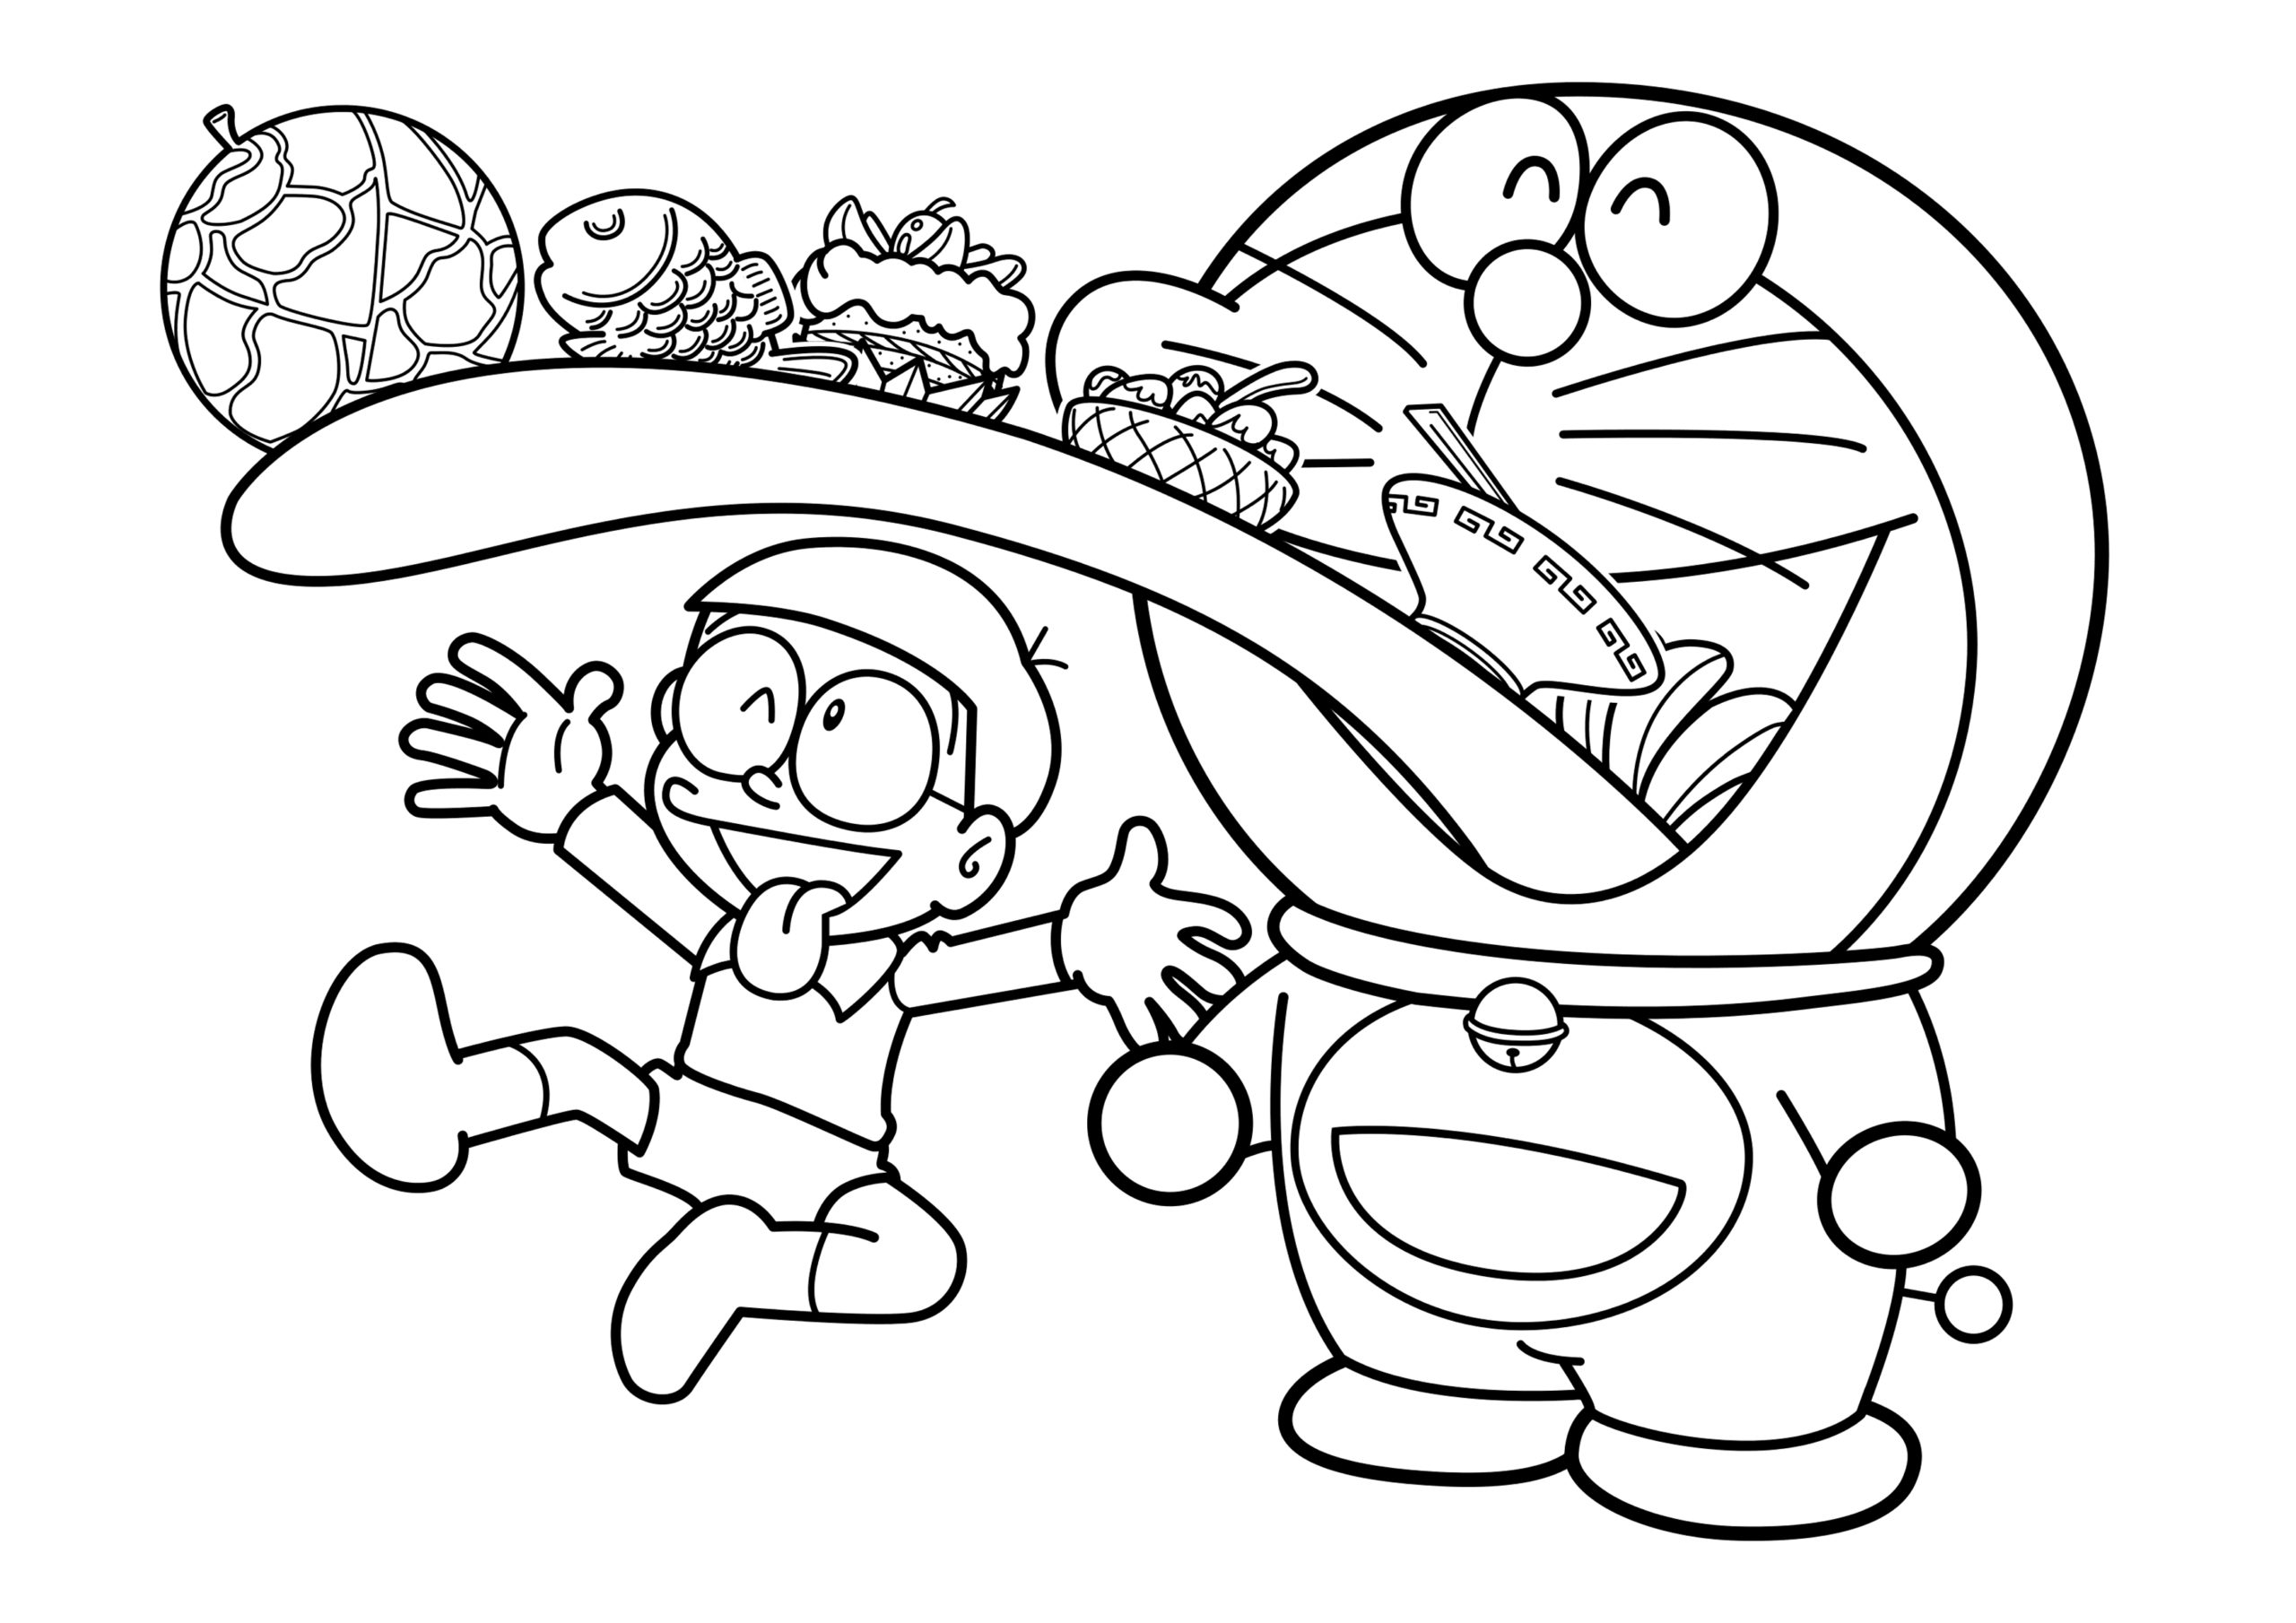 Nobita Coloring Pages - Coloring Home